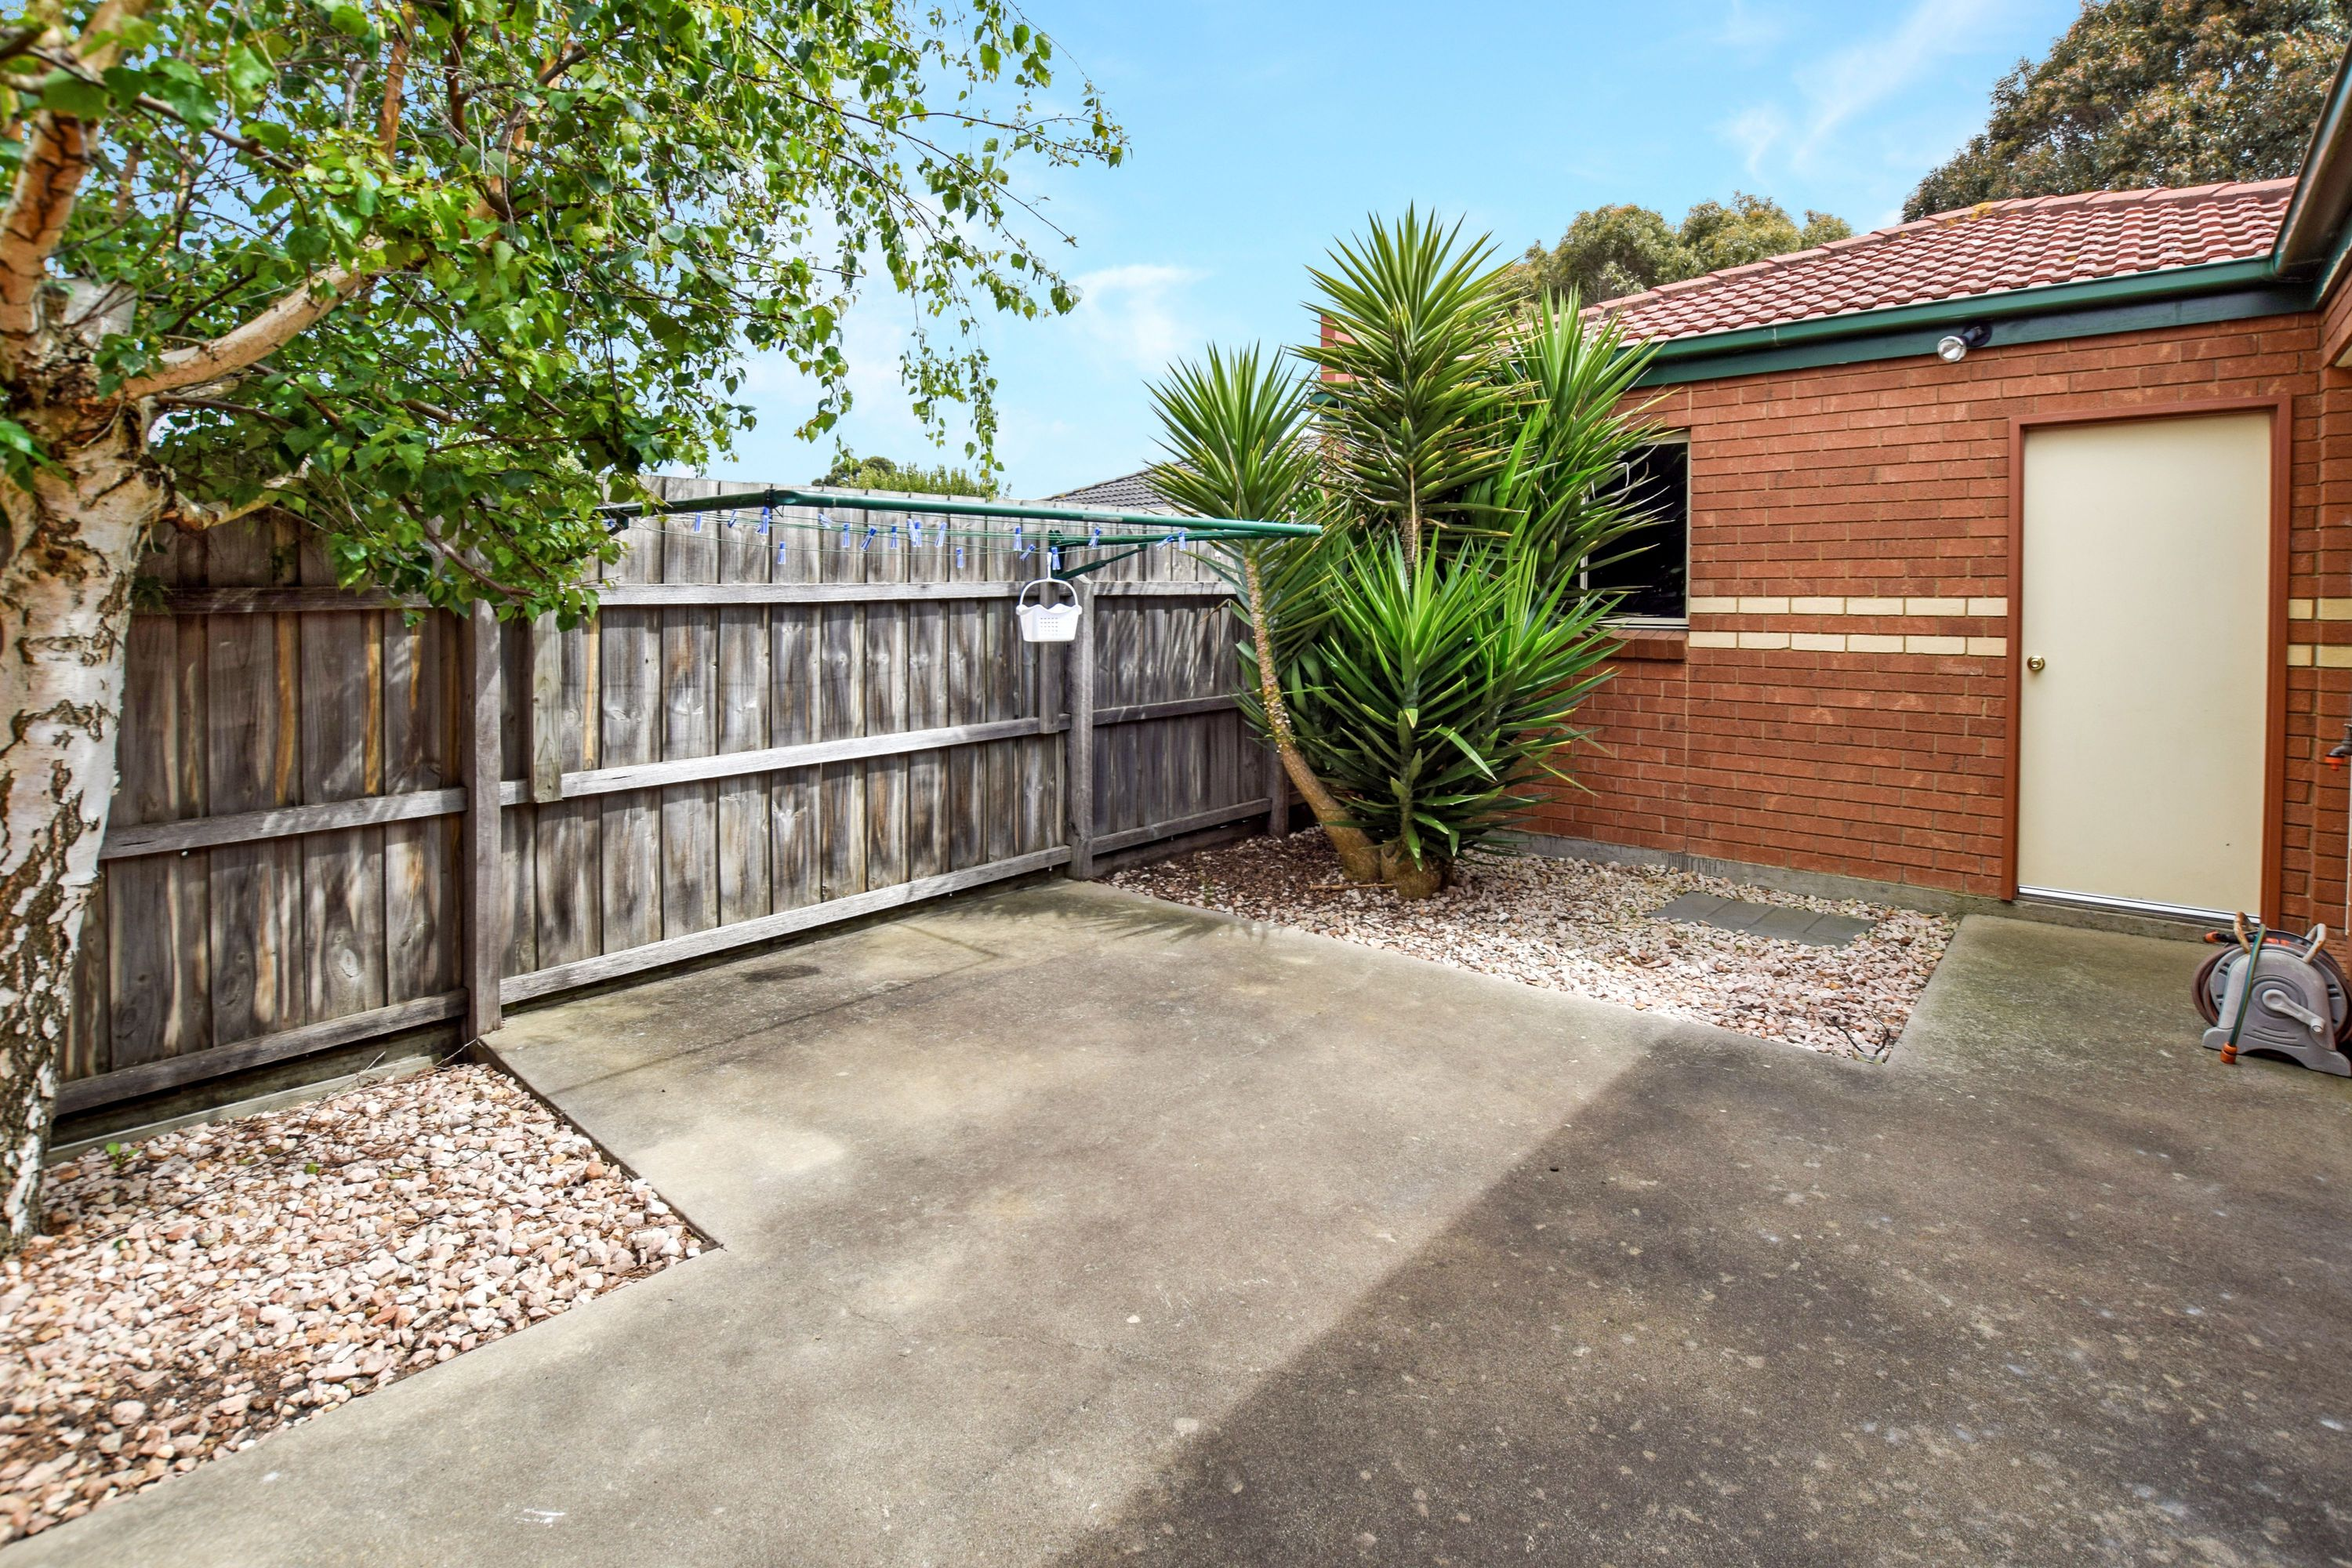 2/6 Toal Drive, Warrnambool, VIC 3280